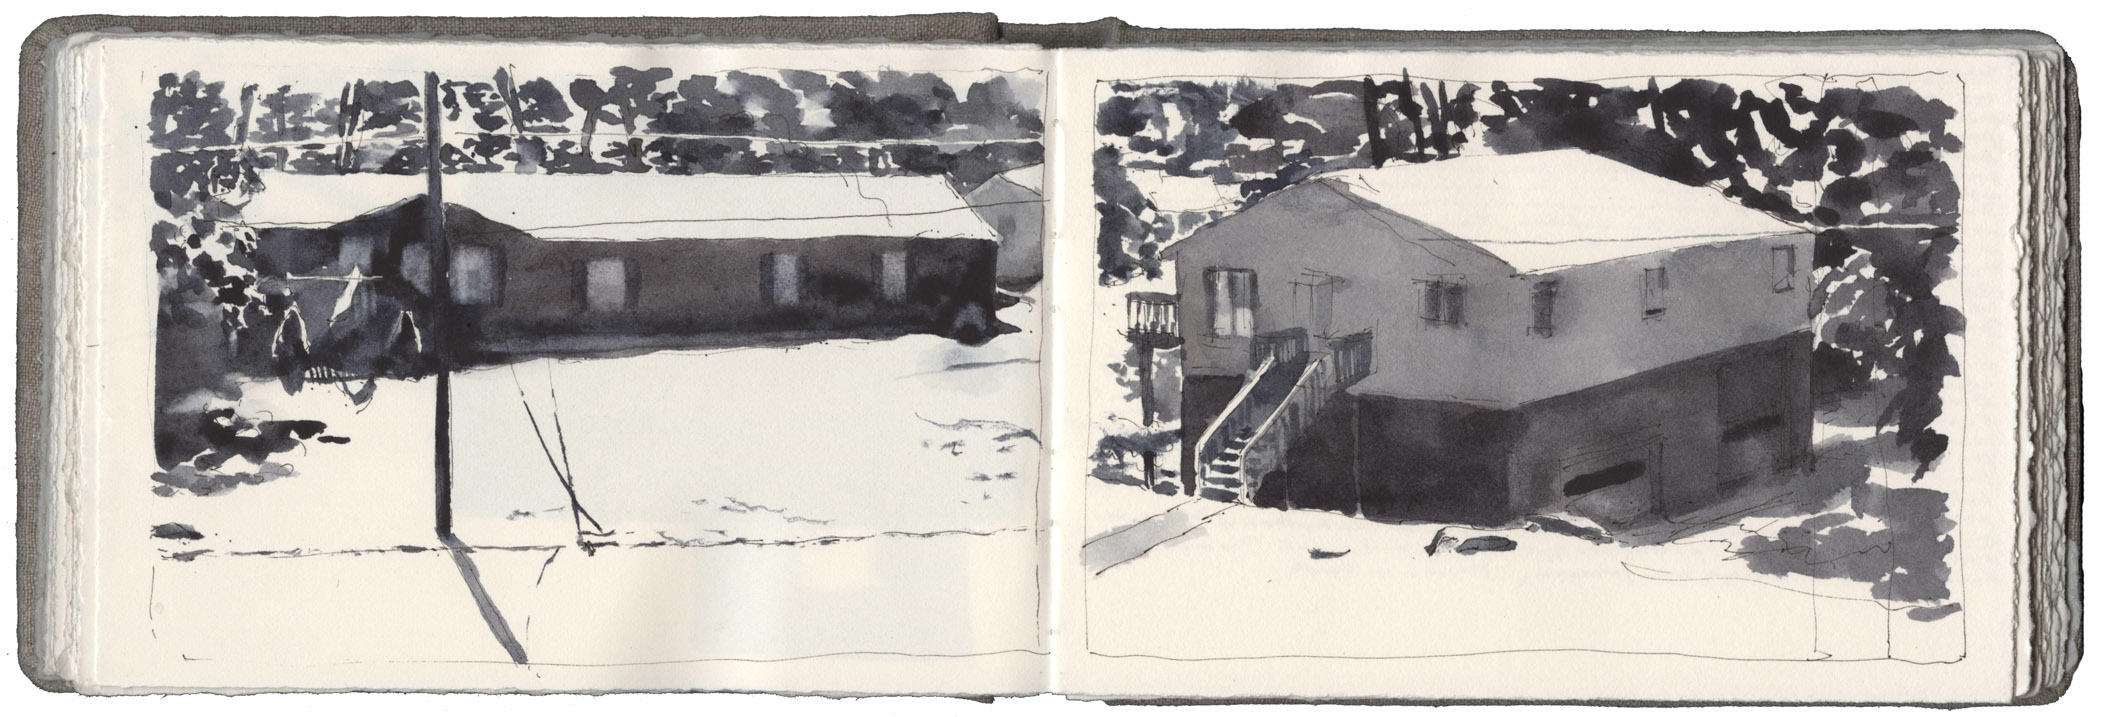 Studies of Houses in Sunlight image